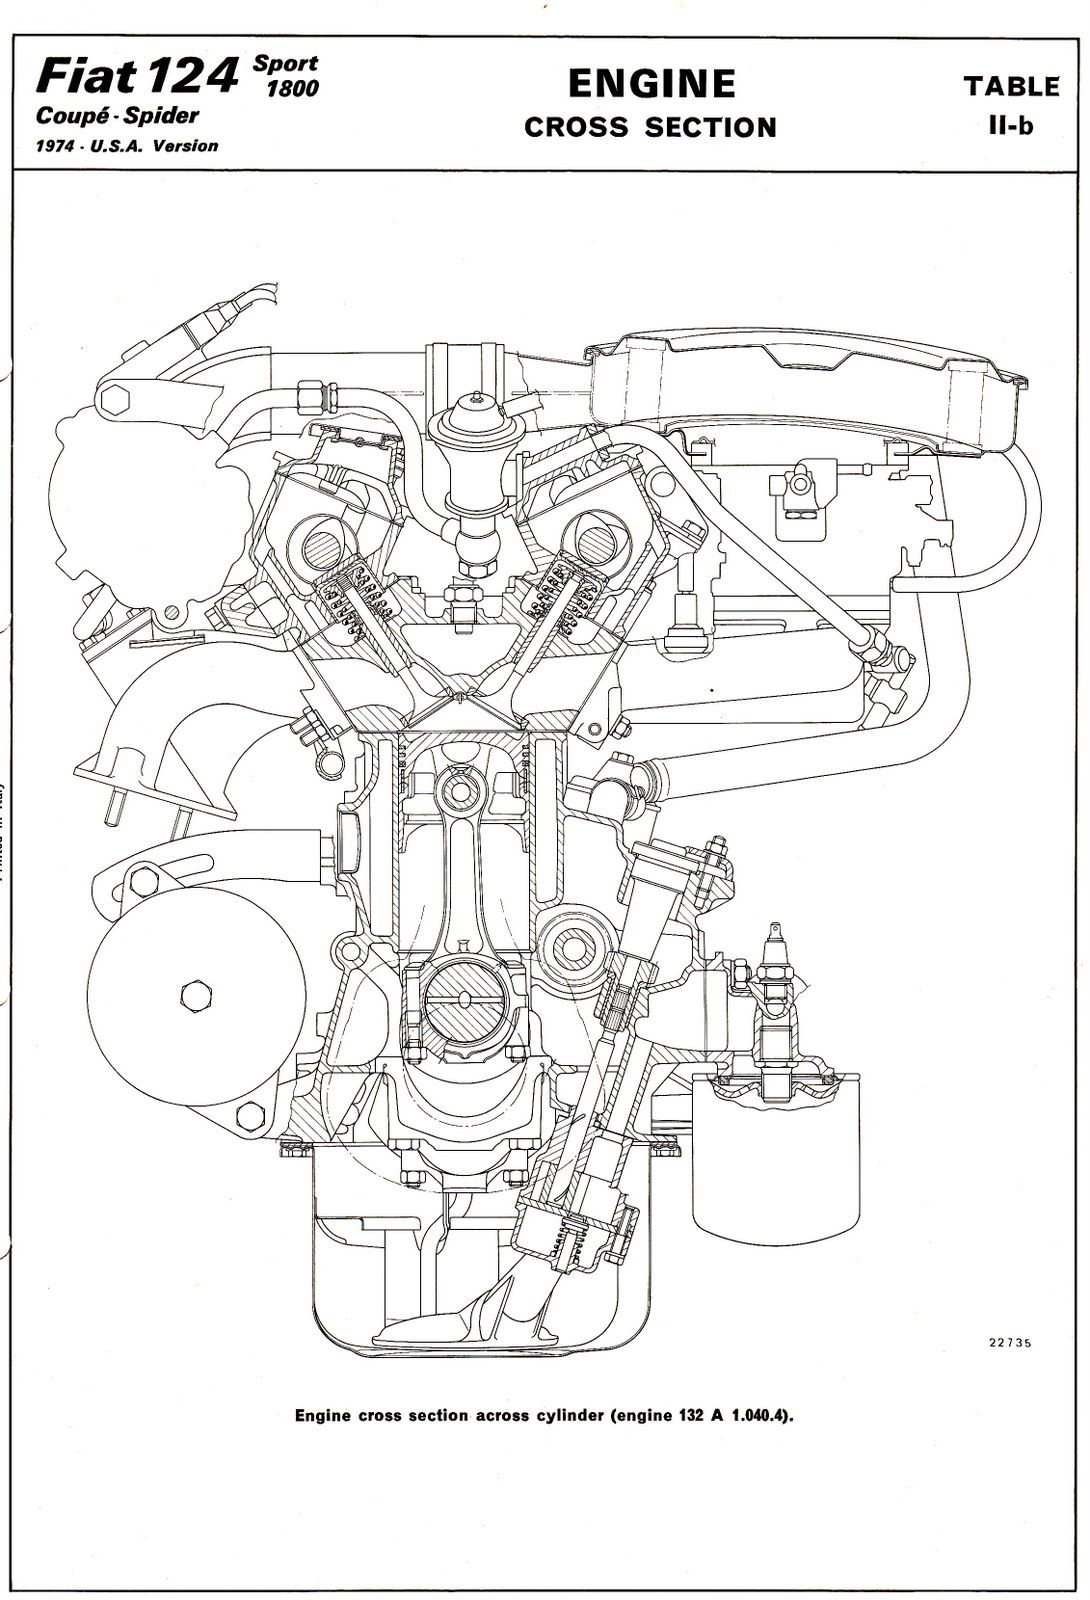 Twin Cam Engine Diagram - Wiring Diagram Perfomance Harley Davidson Twin Cam Schematics And Diagrams on